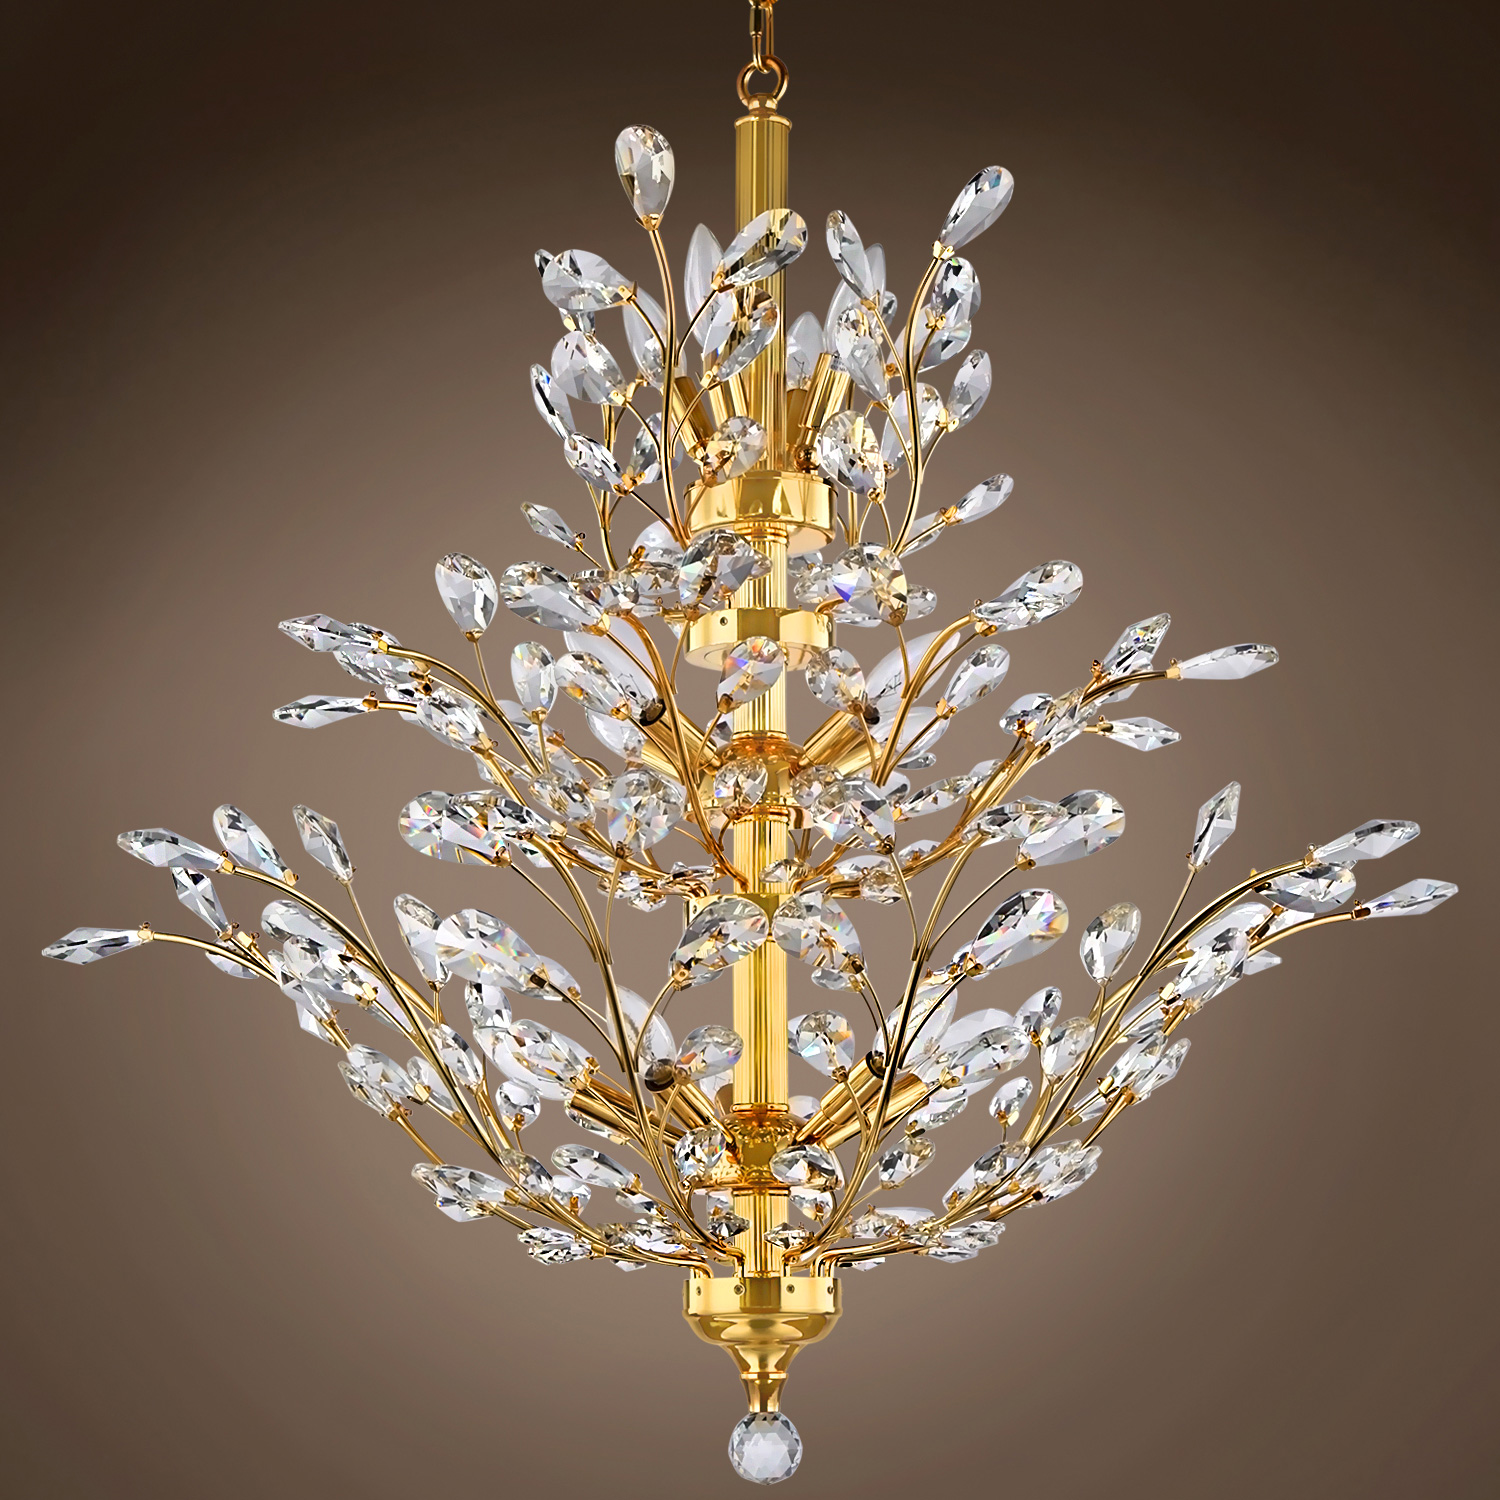 Branch of Light Design Joshua Marshal Home Collection We Got Lites